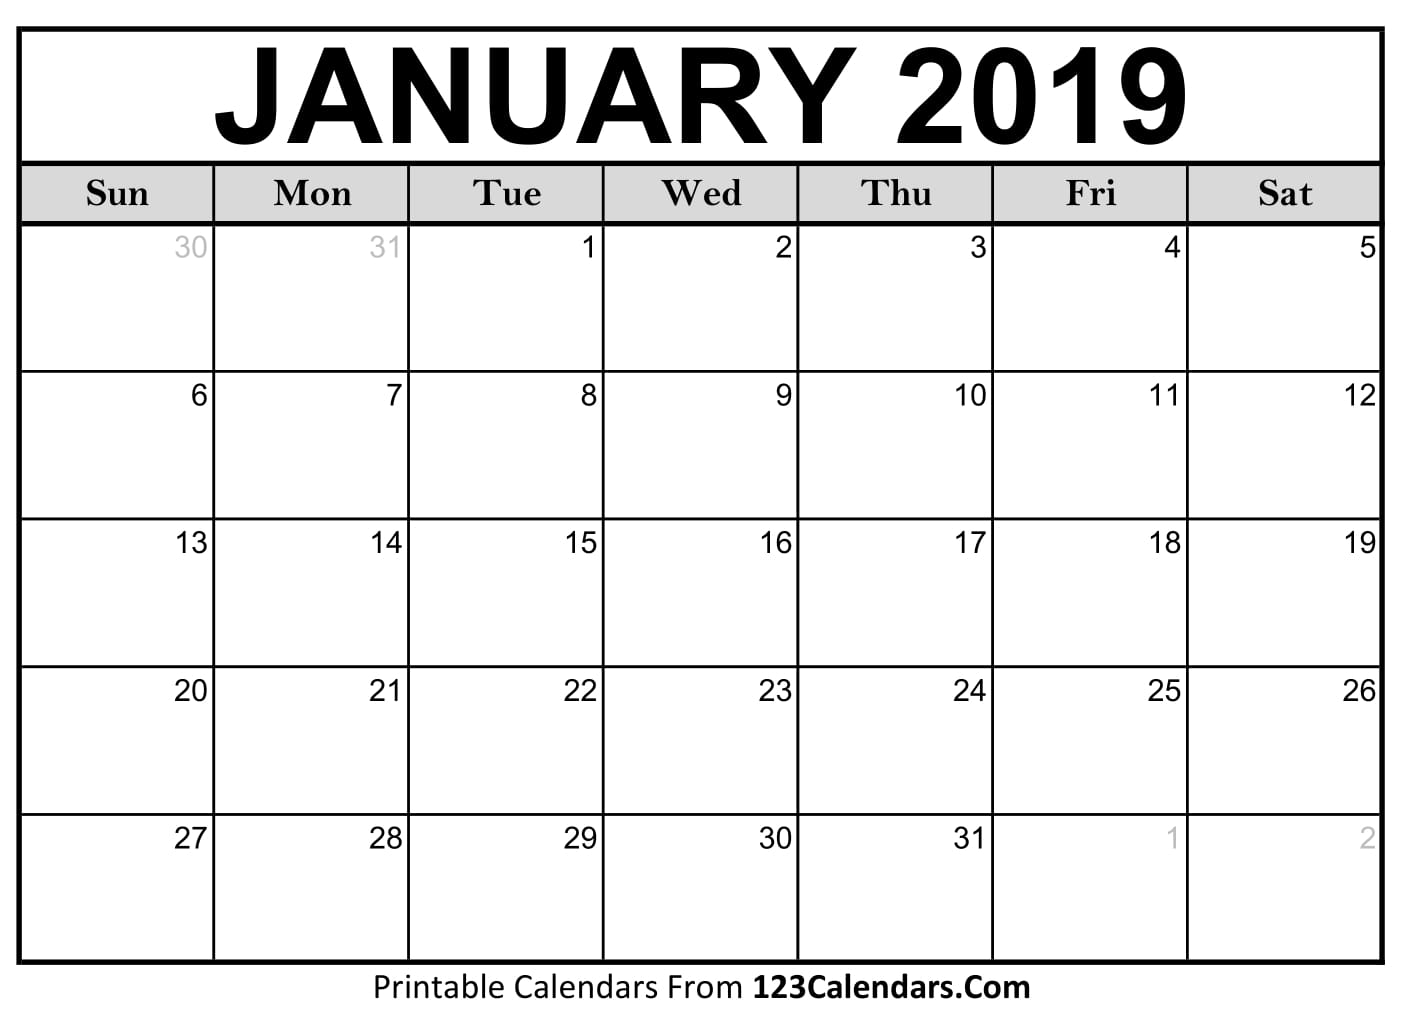 January Calendar 2019 Images 2019 Printable Monthly Calendar Formats (Blank) | Zenodo